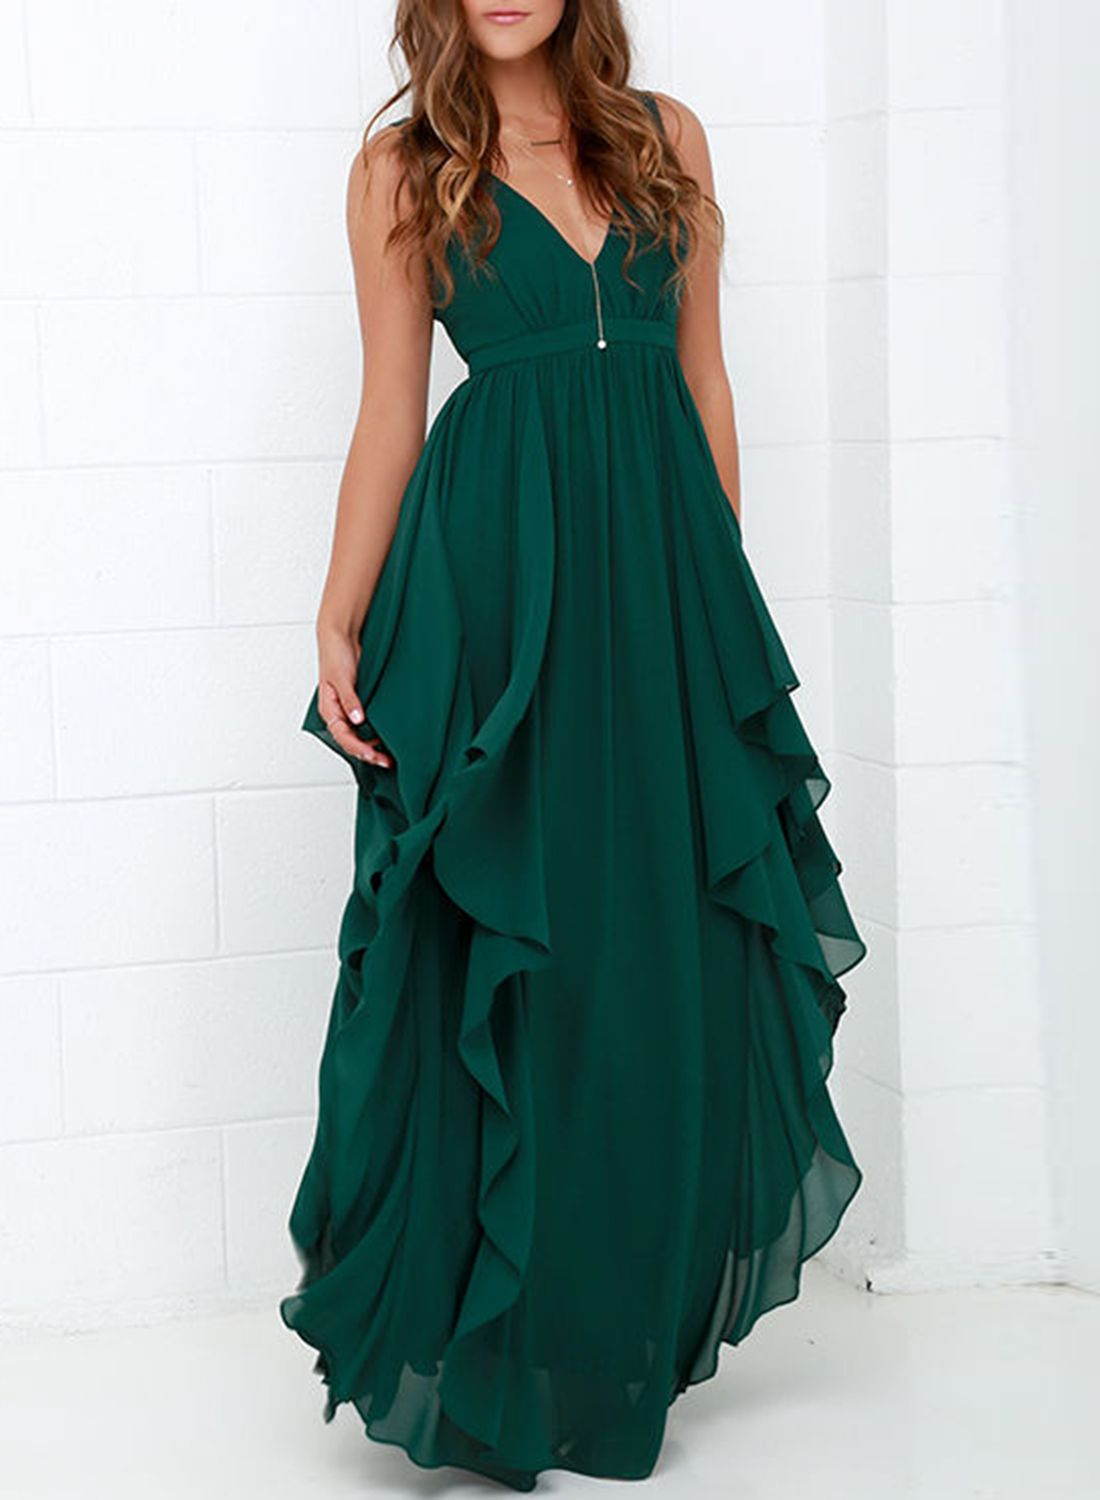 The dress made from chiffon with deep v flouncing design and sleeve